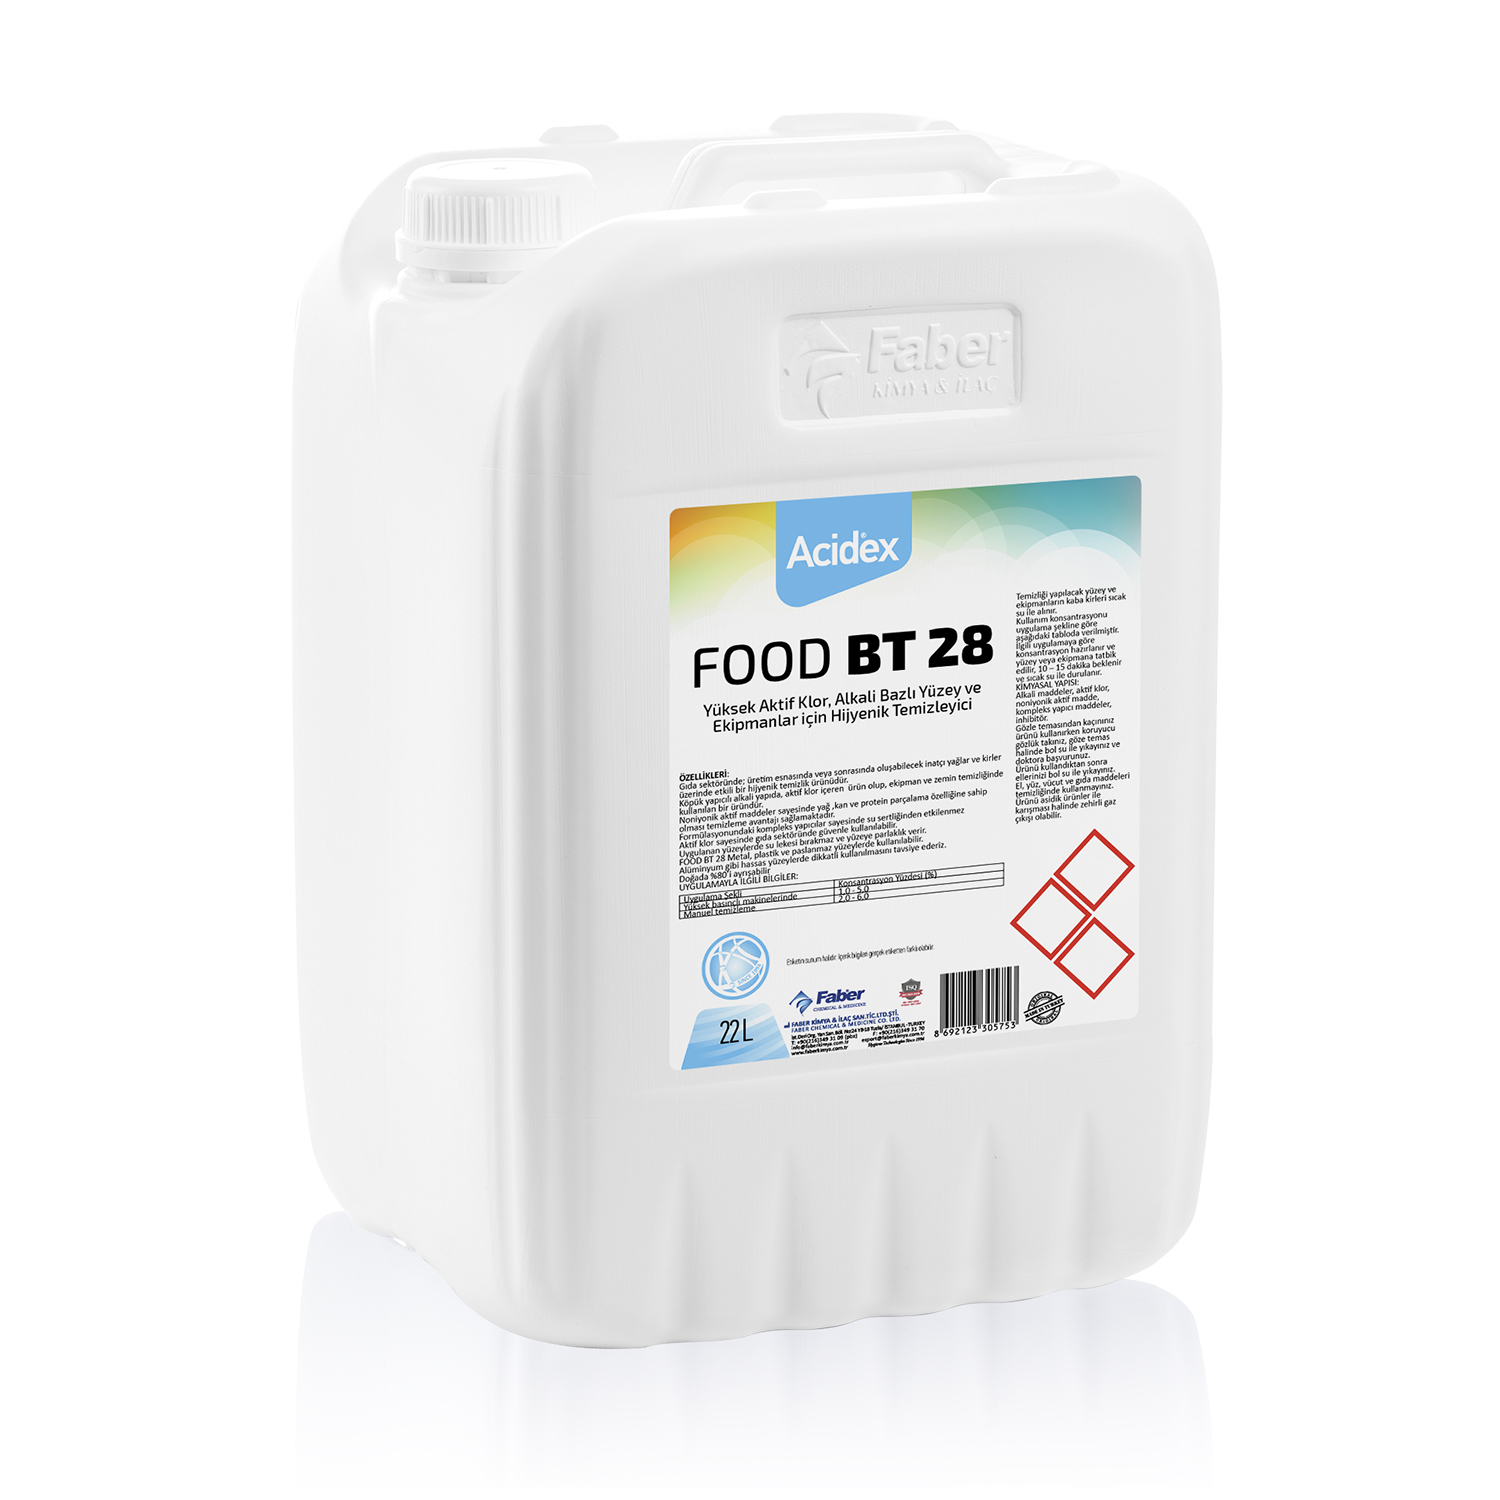 Acidex Food BT 28